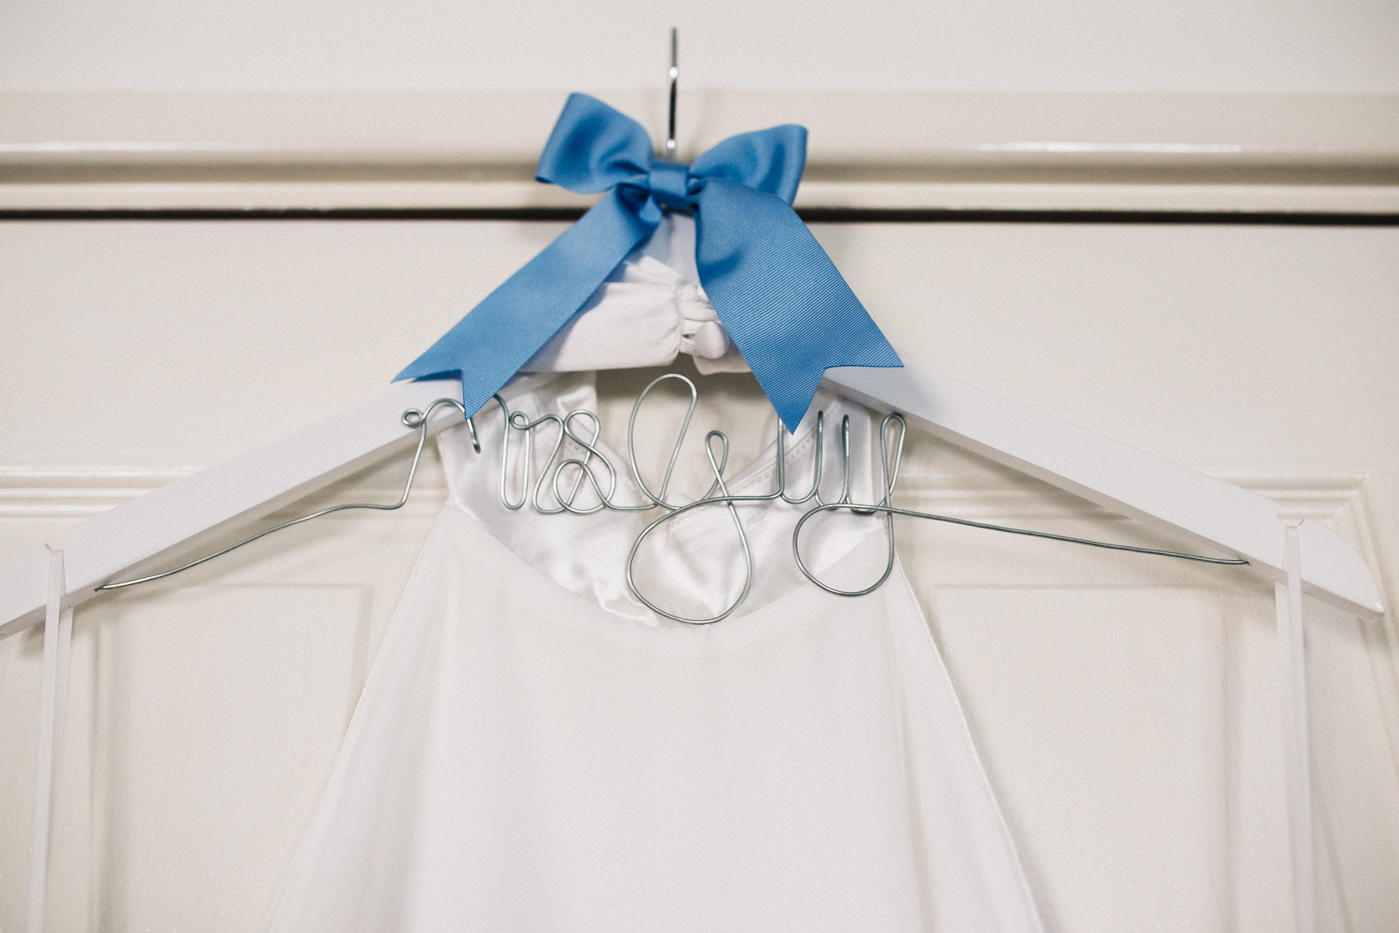 a edding dress hangs up with 'mrs guy' written on the coat hanger. relaxed teesside middlesbrough wedding photographer, wedding at home